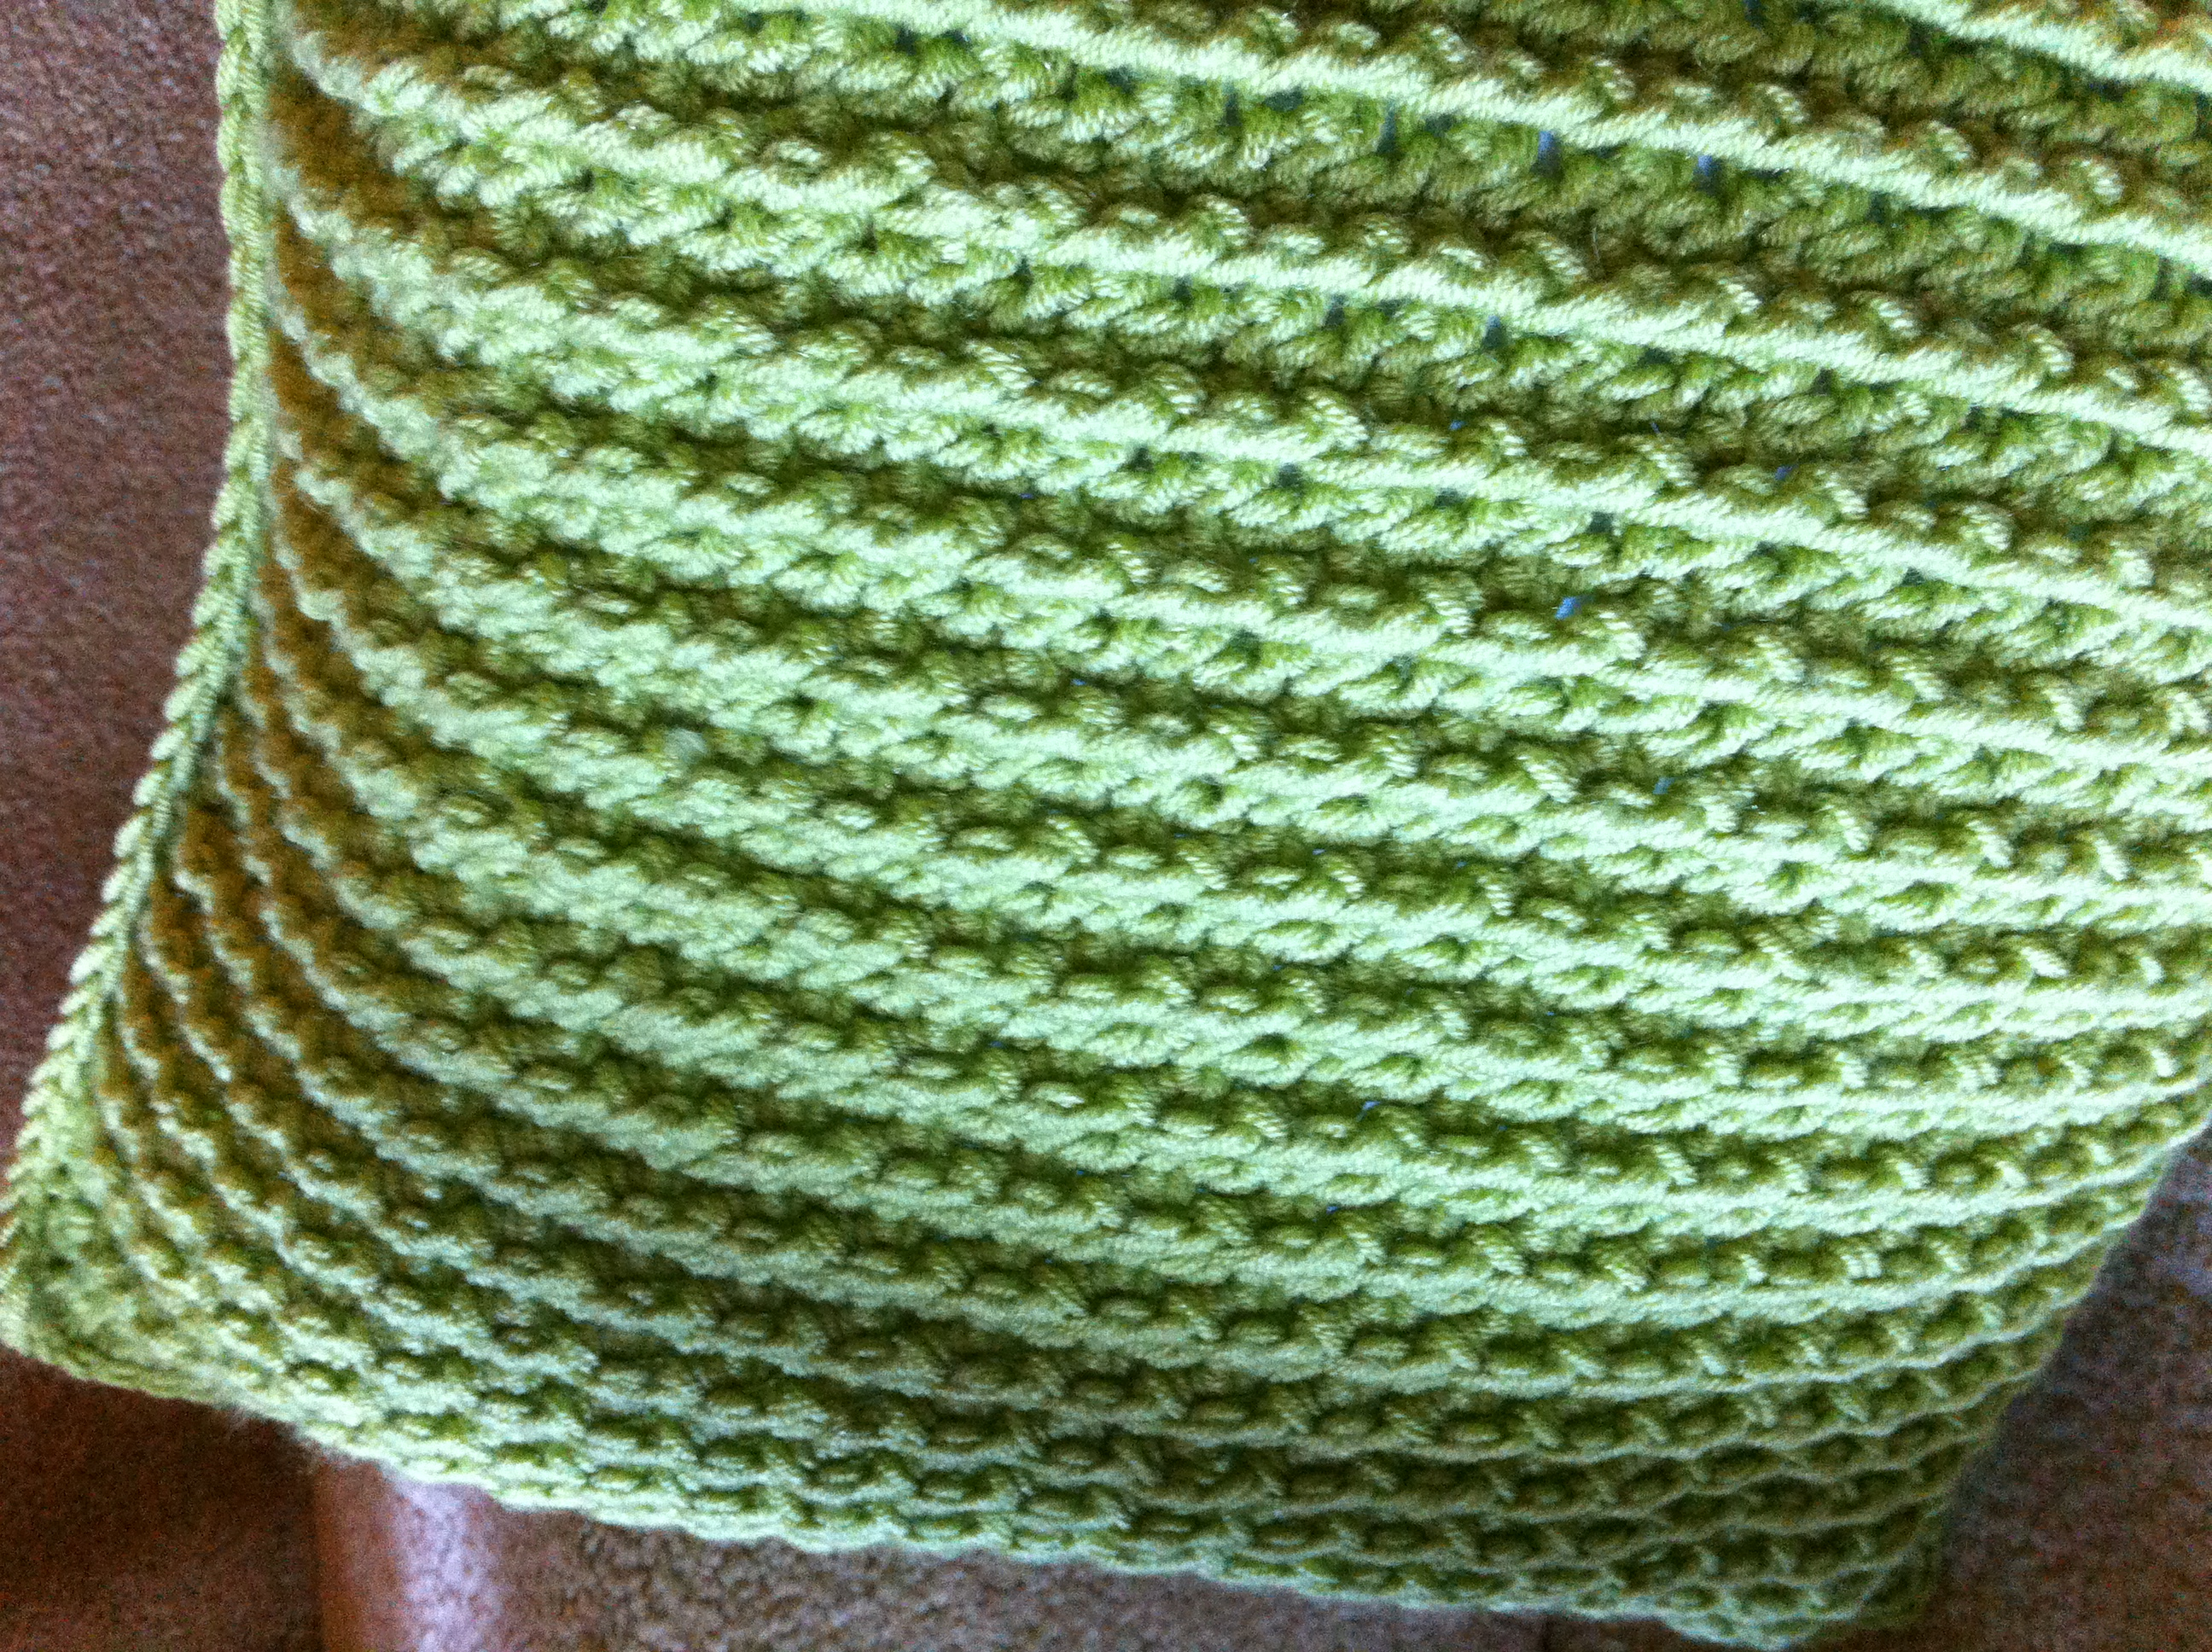 Free Crochet Patterns For Small Pillows : Back to photostream